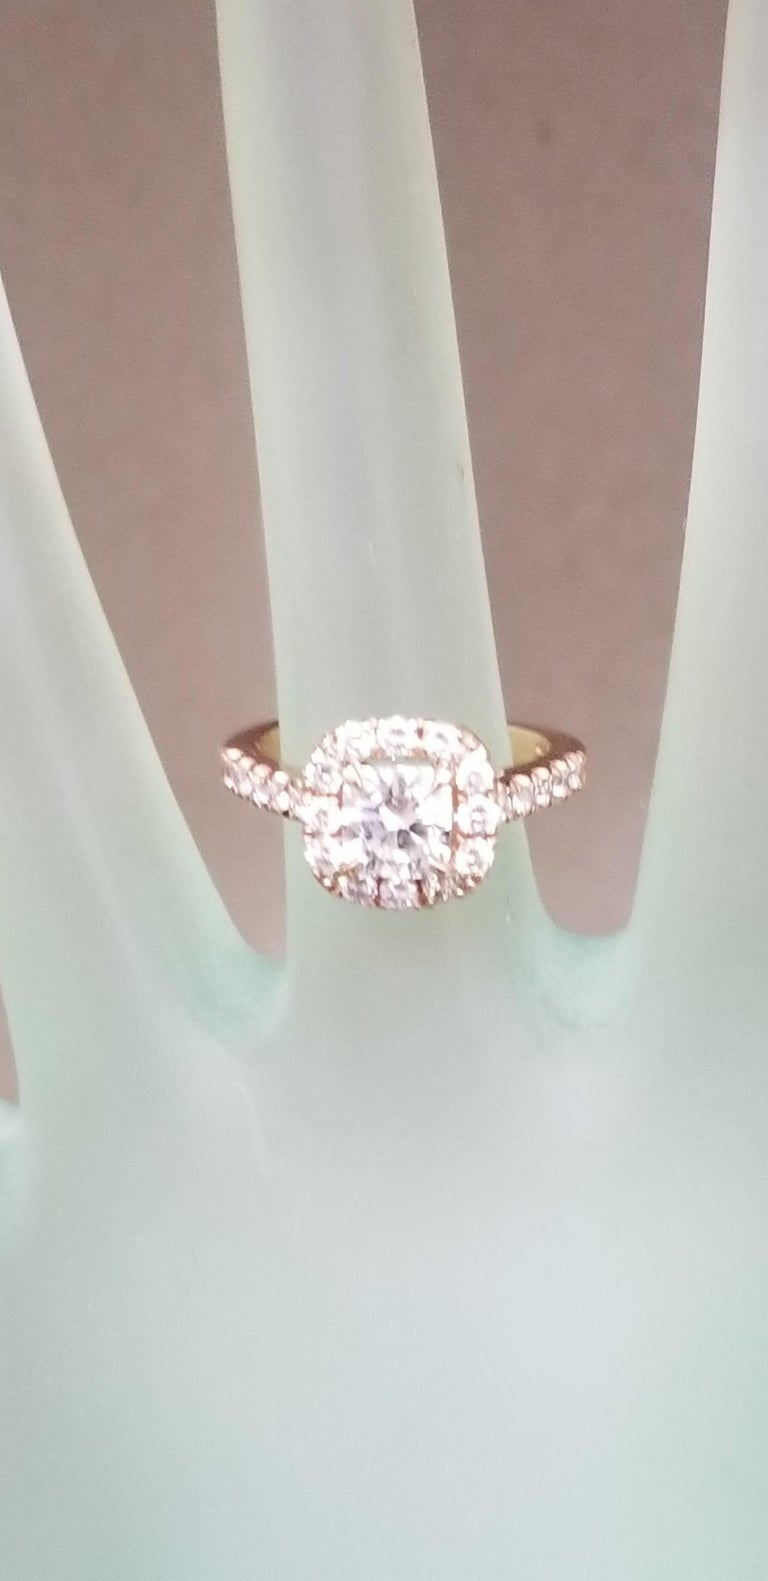 .97 Carat Radiant Diamond in Halo Ring For Sale 1